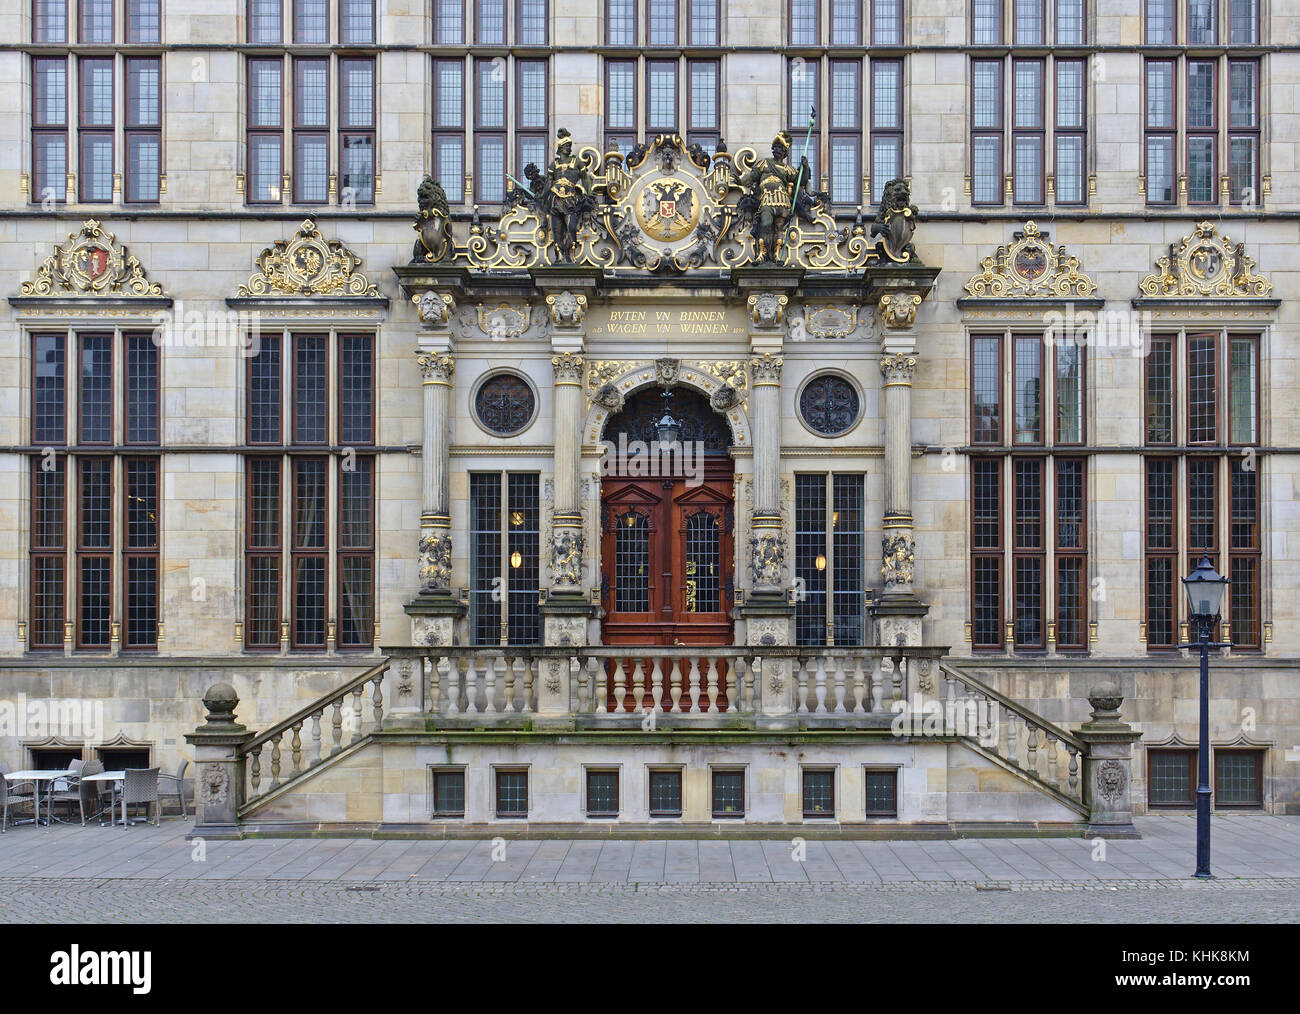 """franconia jewish personals The synagogue is a stop on the guided tour """"jewish life in bayreuth"""" across from the synagogue is the construction site for a new jewish cultural and community center, complete with a ballroom, museum, tabernacle, kosher café, and a talmud-torah school."""